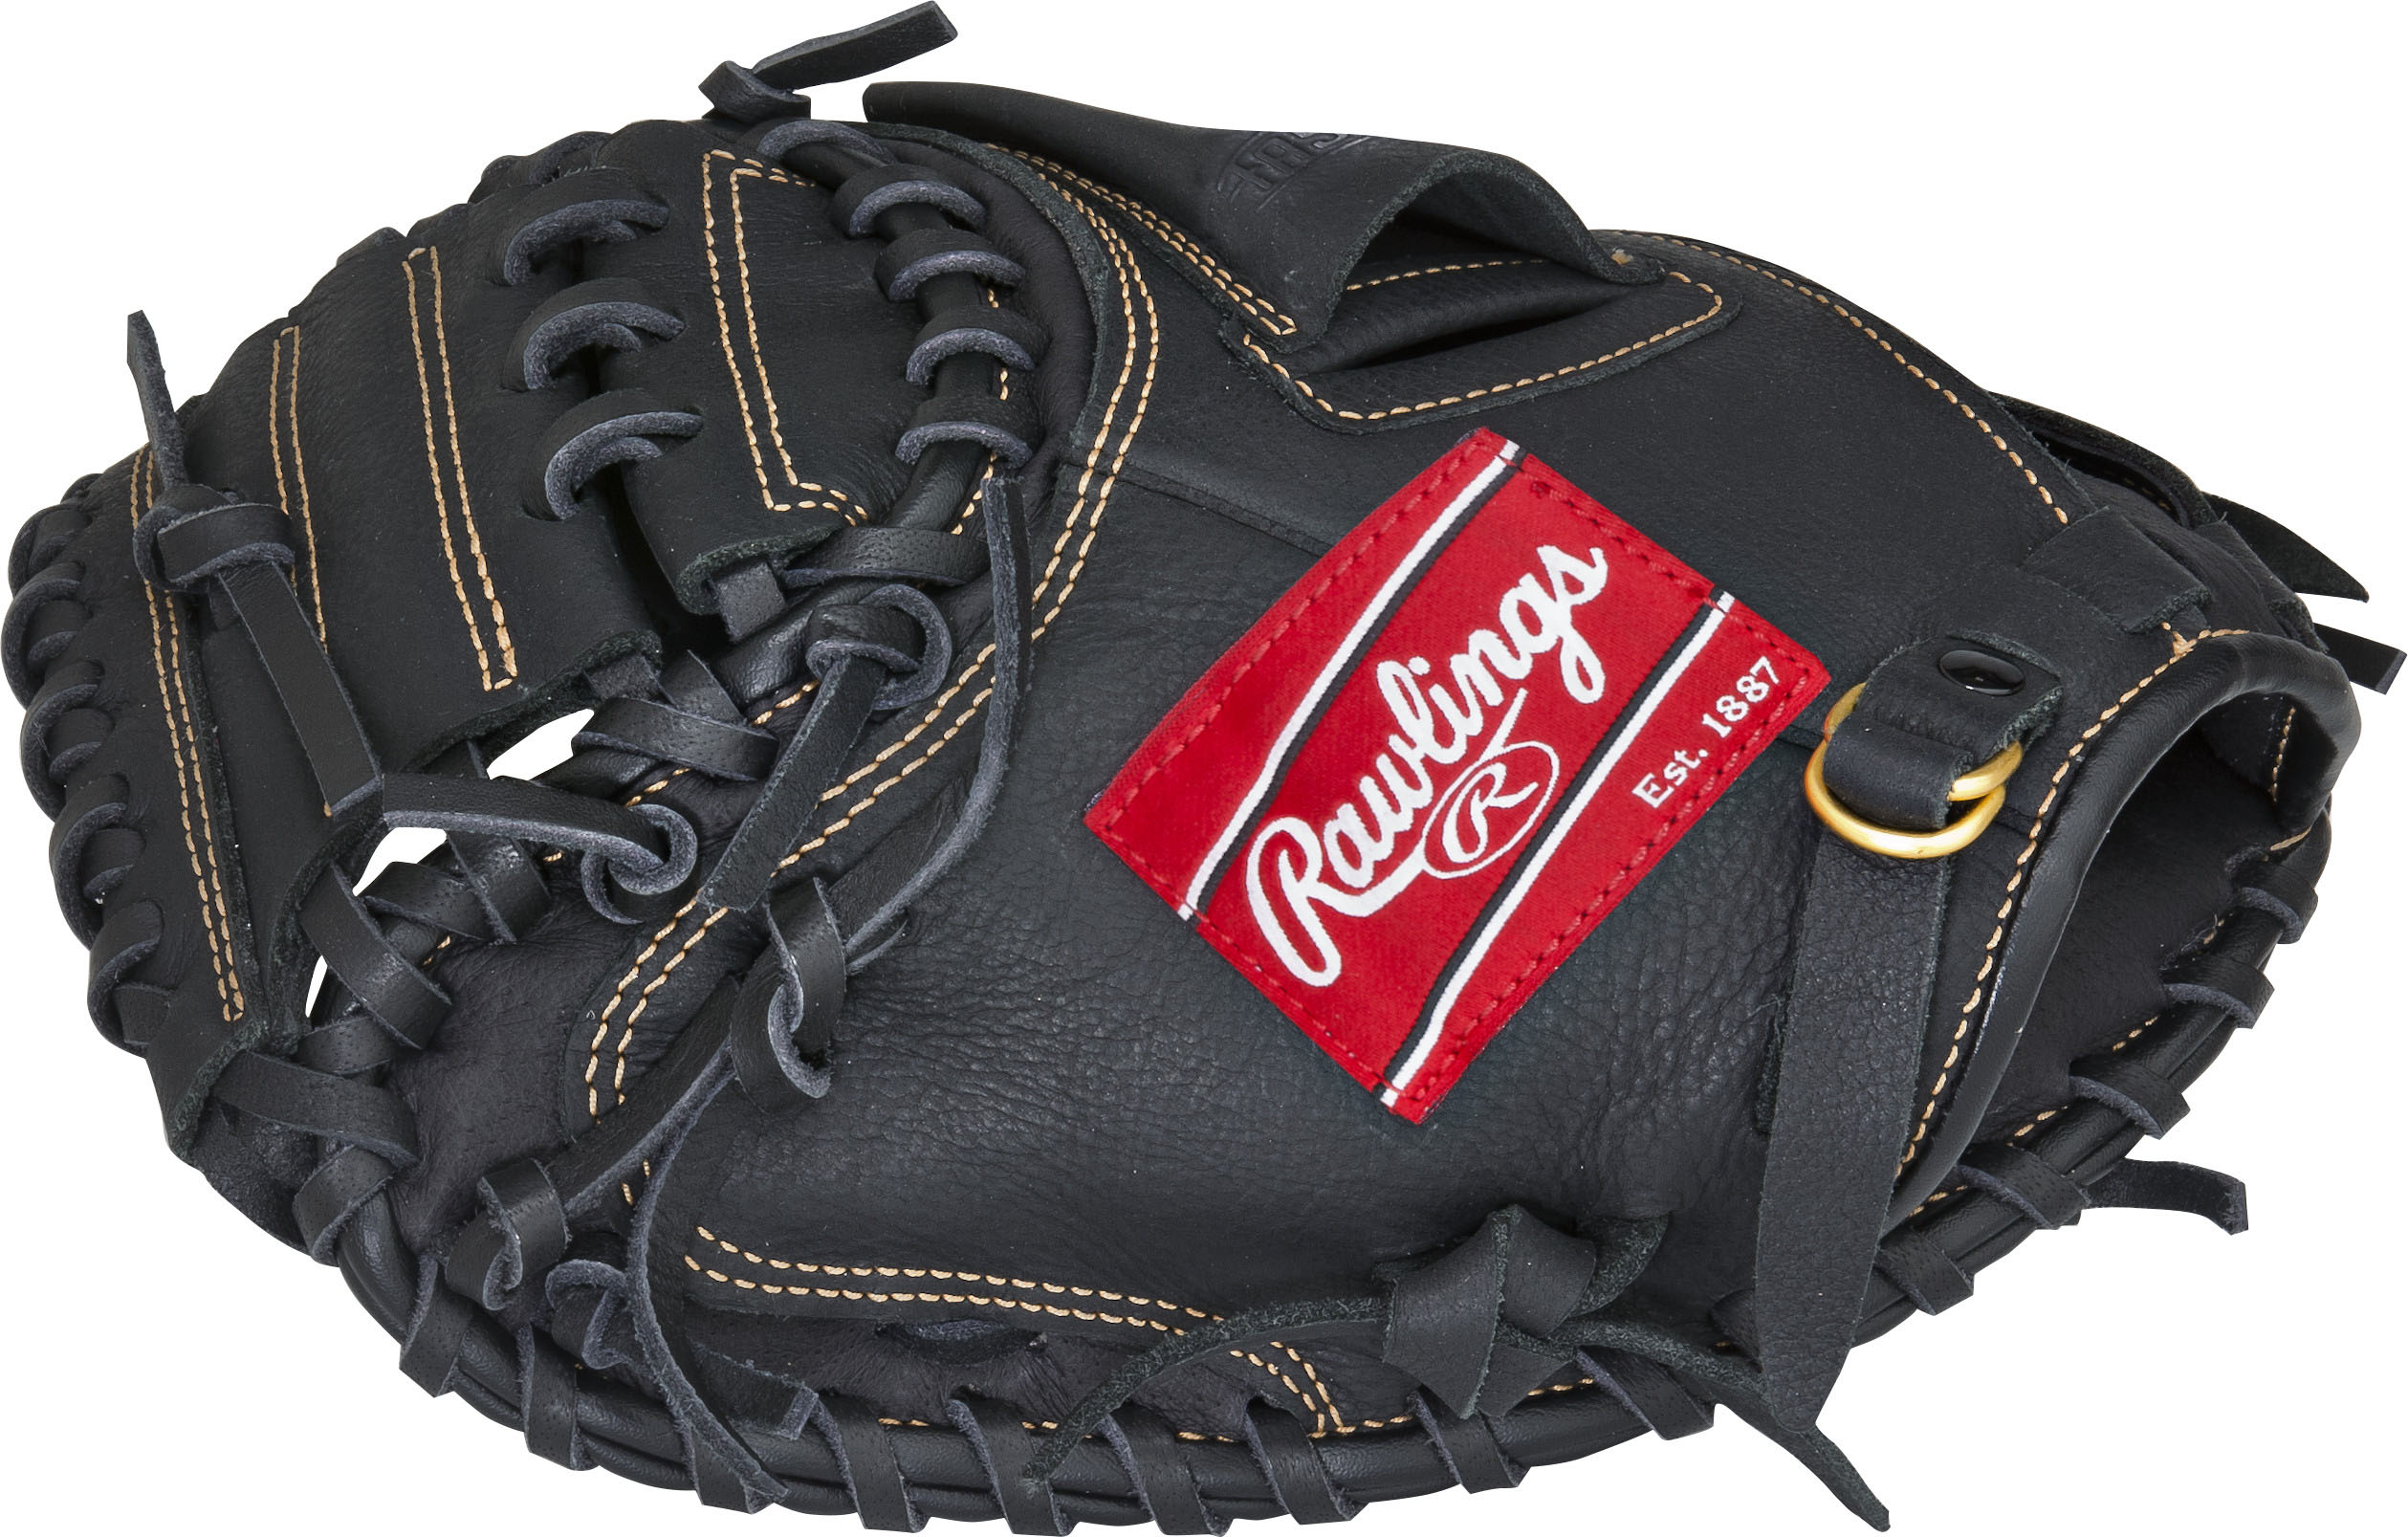 http://www.bestbatdeals.com/images/gloves/rawlings/RCM315BB_thumb.jpg